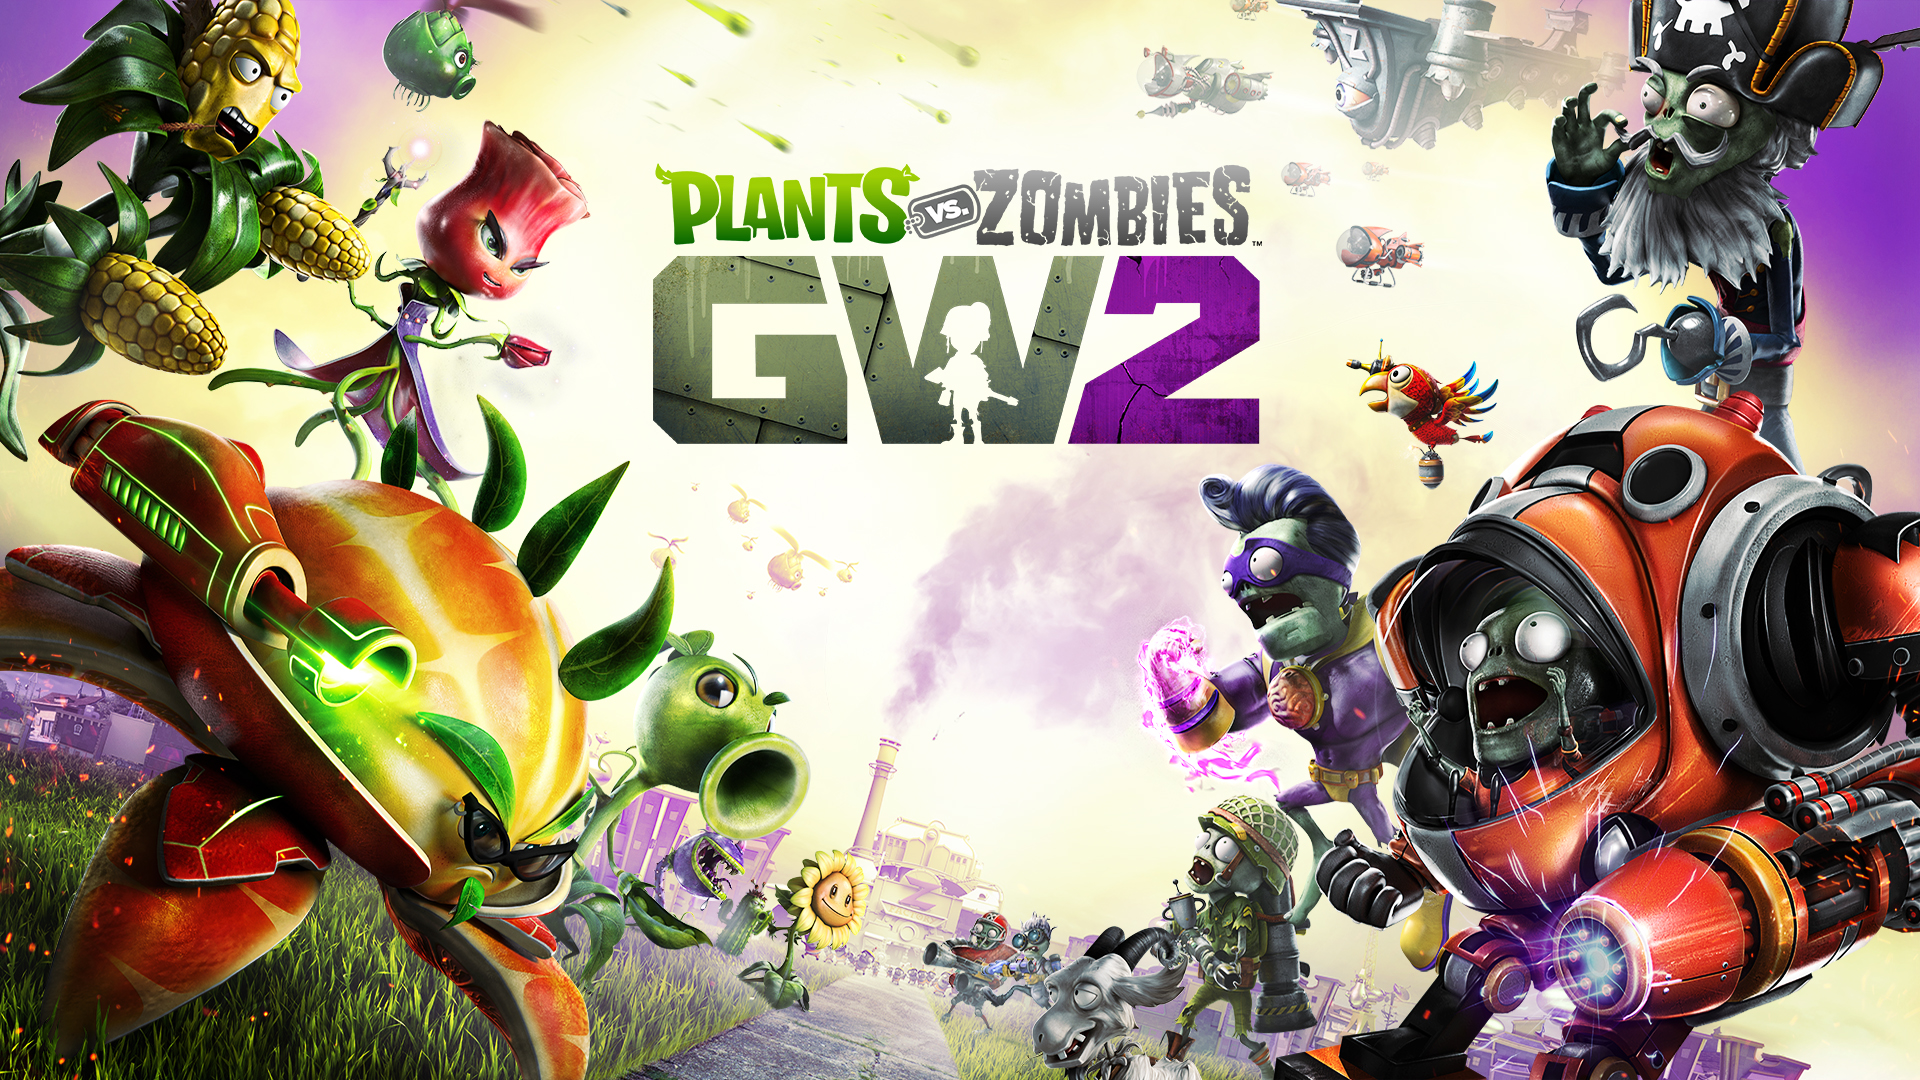 pvz plants solo zombies best team garden articles tombstones warfare the how vs to make ops